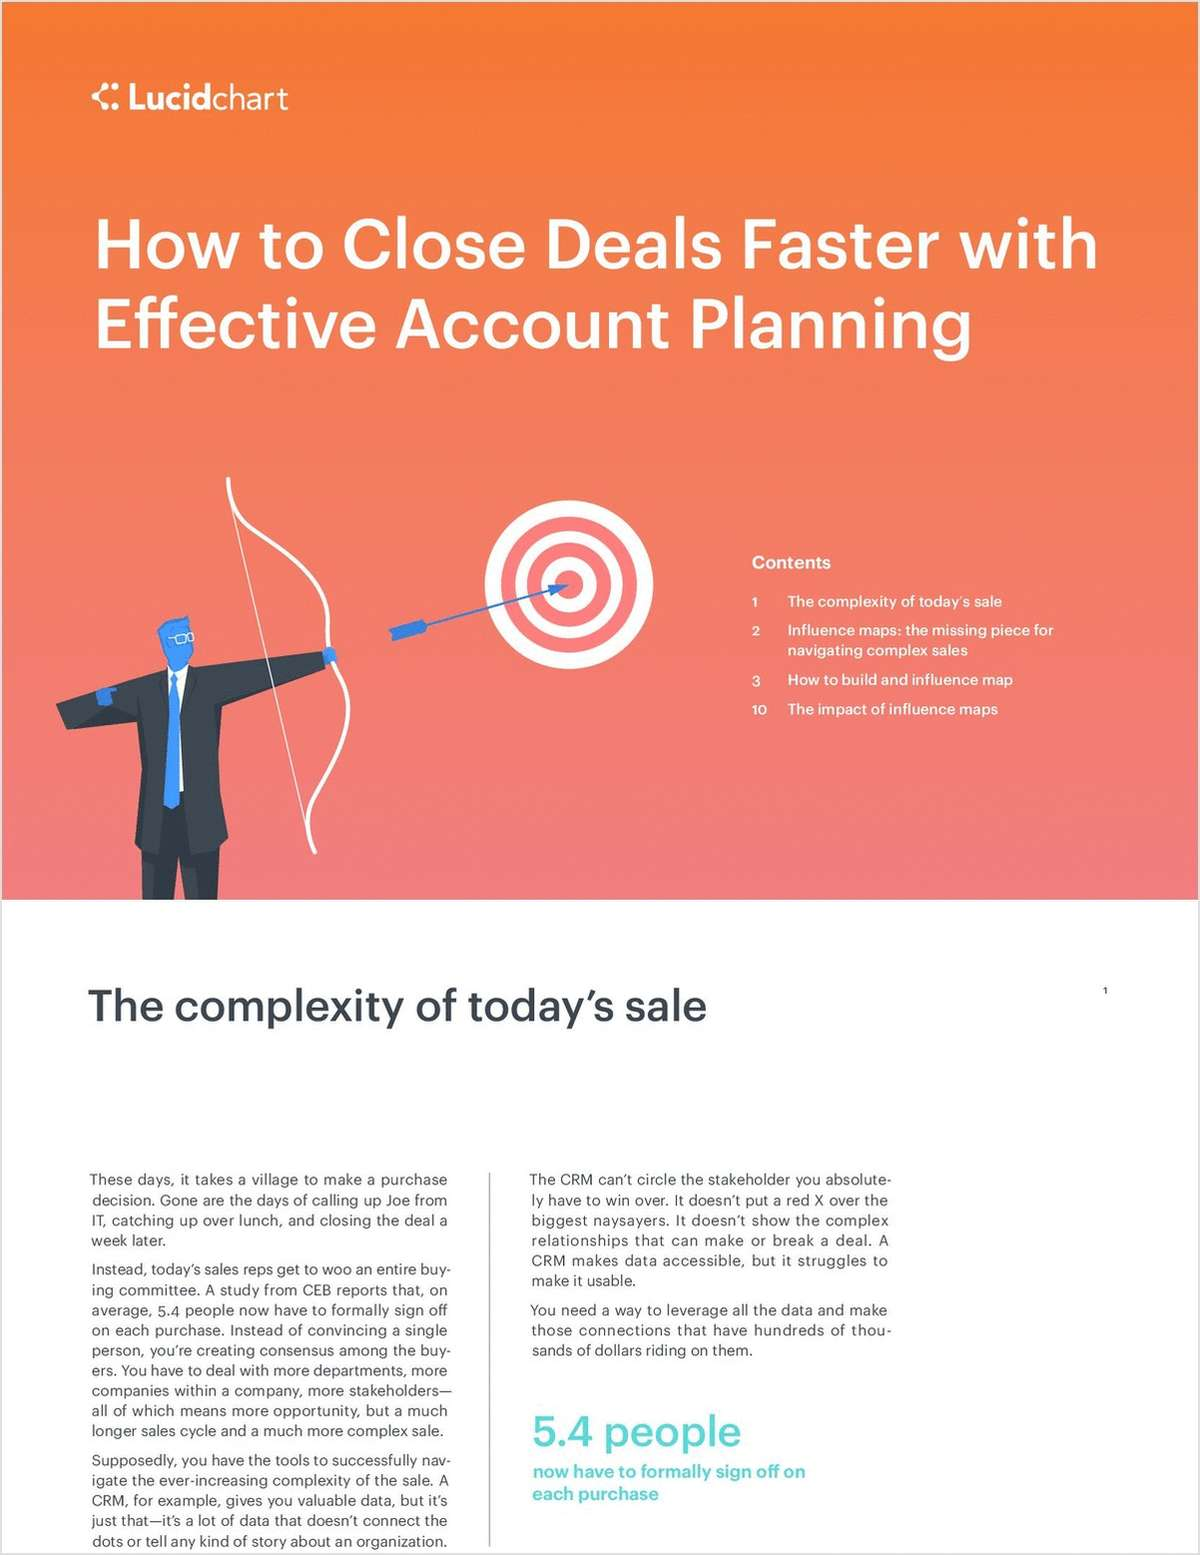 How to Close Deals Faster with Effective Account Planning